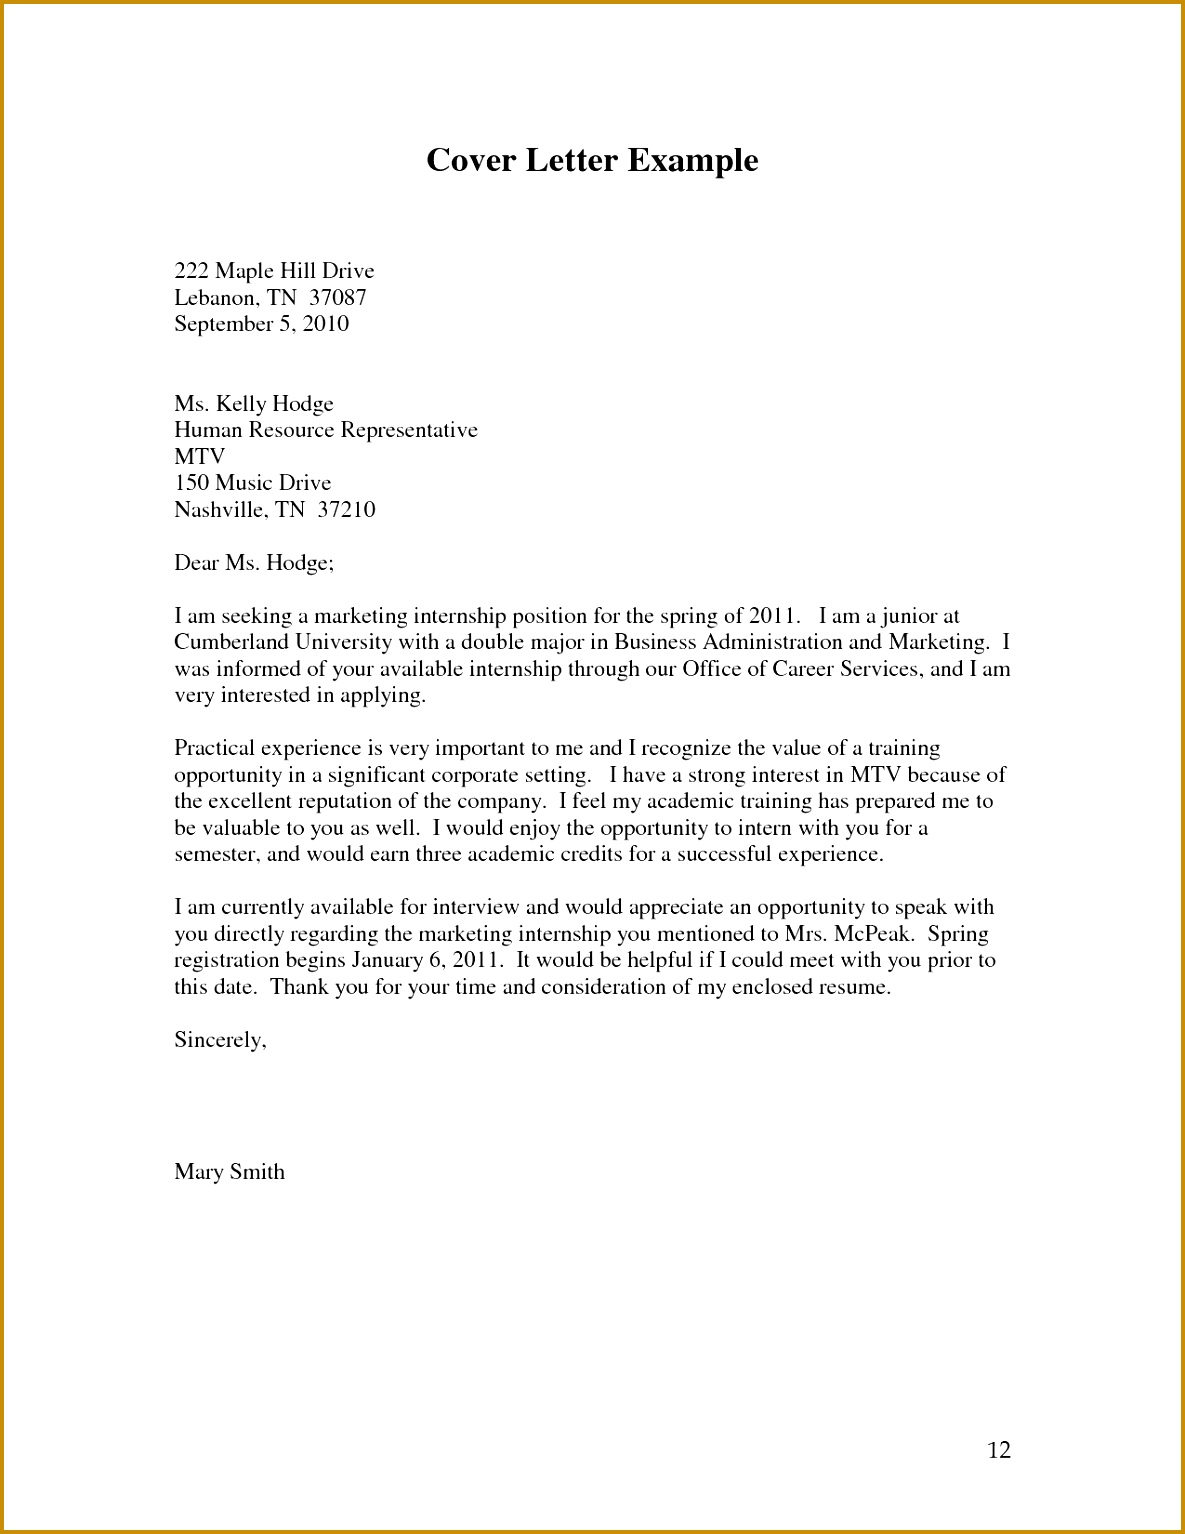 Cover Letters and Resumes Inspirational Cover Letter Examples for Internship Beautiful Job Letter 0d 15341185